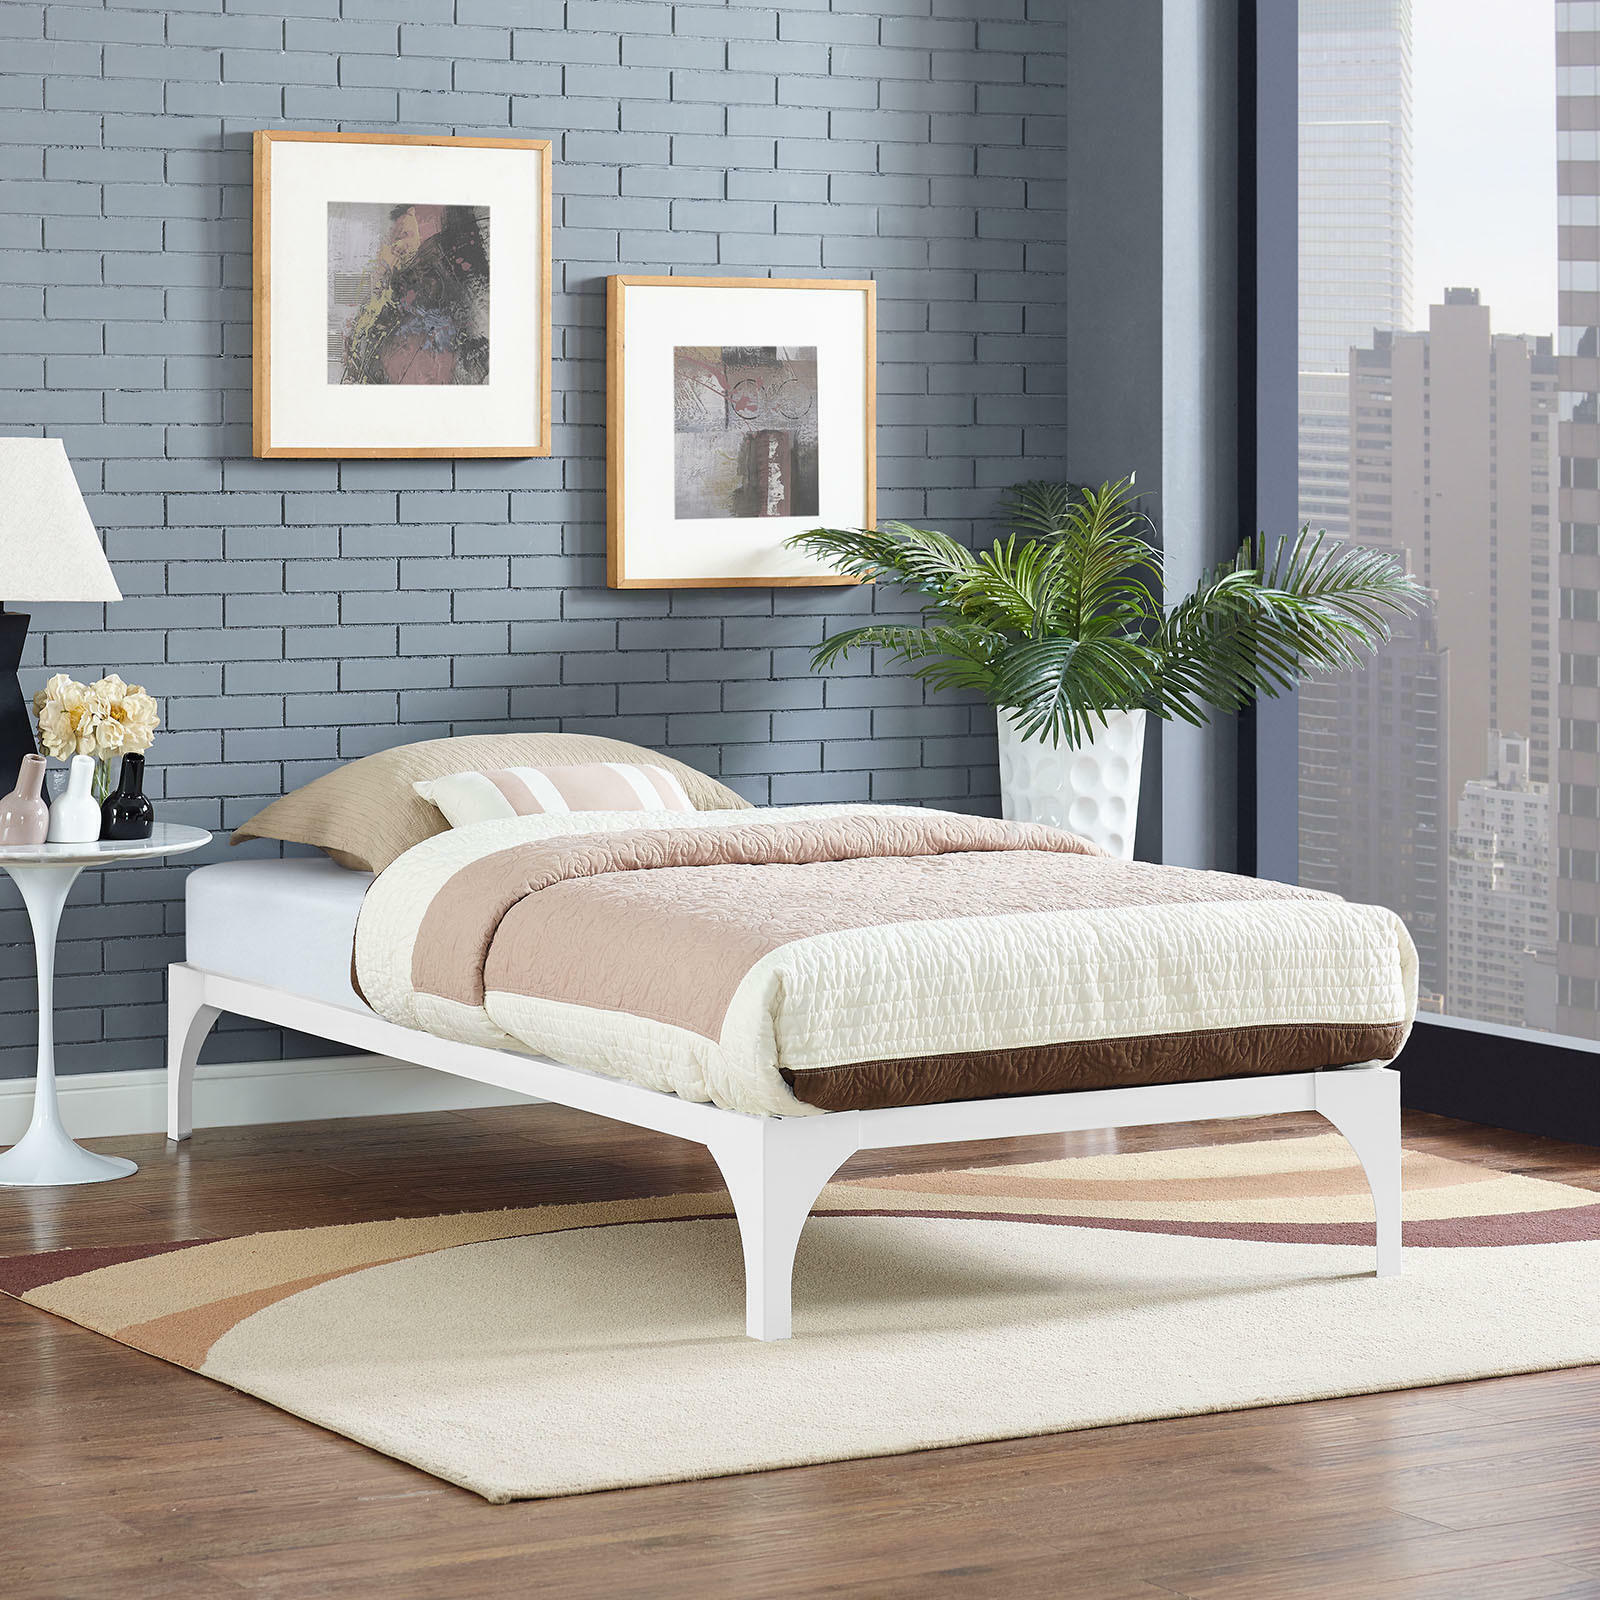 Details about Contemporary Modern Steel Metal Twin Platform Bed Frame With  Wood Slats in White